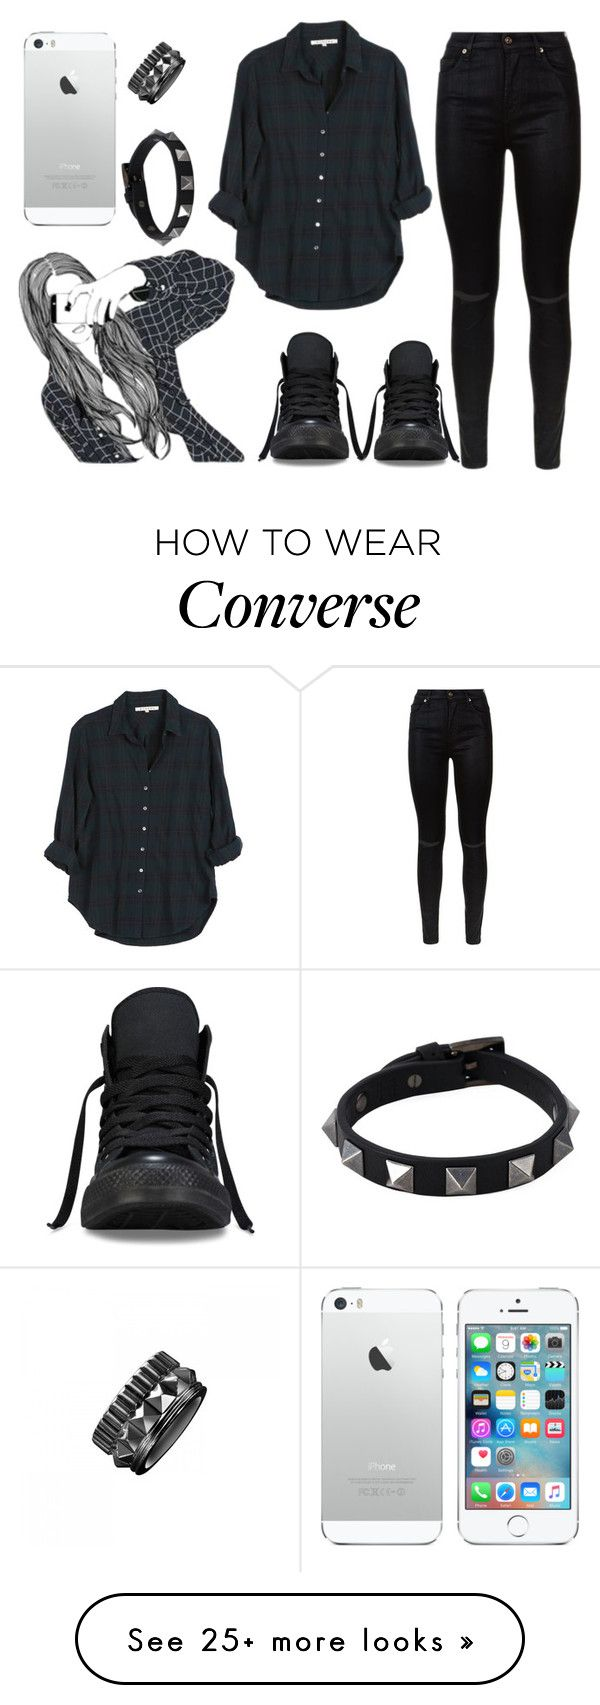 """""""Untitled #156"""" by marleen5marleen on Polyvore featuring moda, 7 For All Mankind, Xirena, Waterford, Valentino y Converse"""